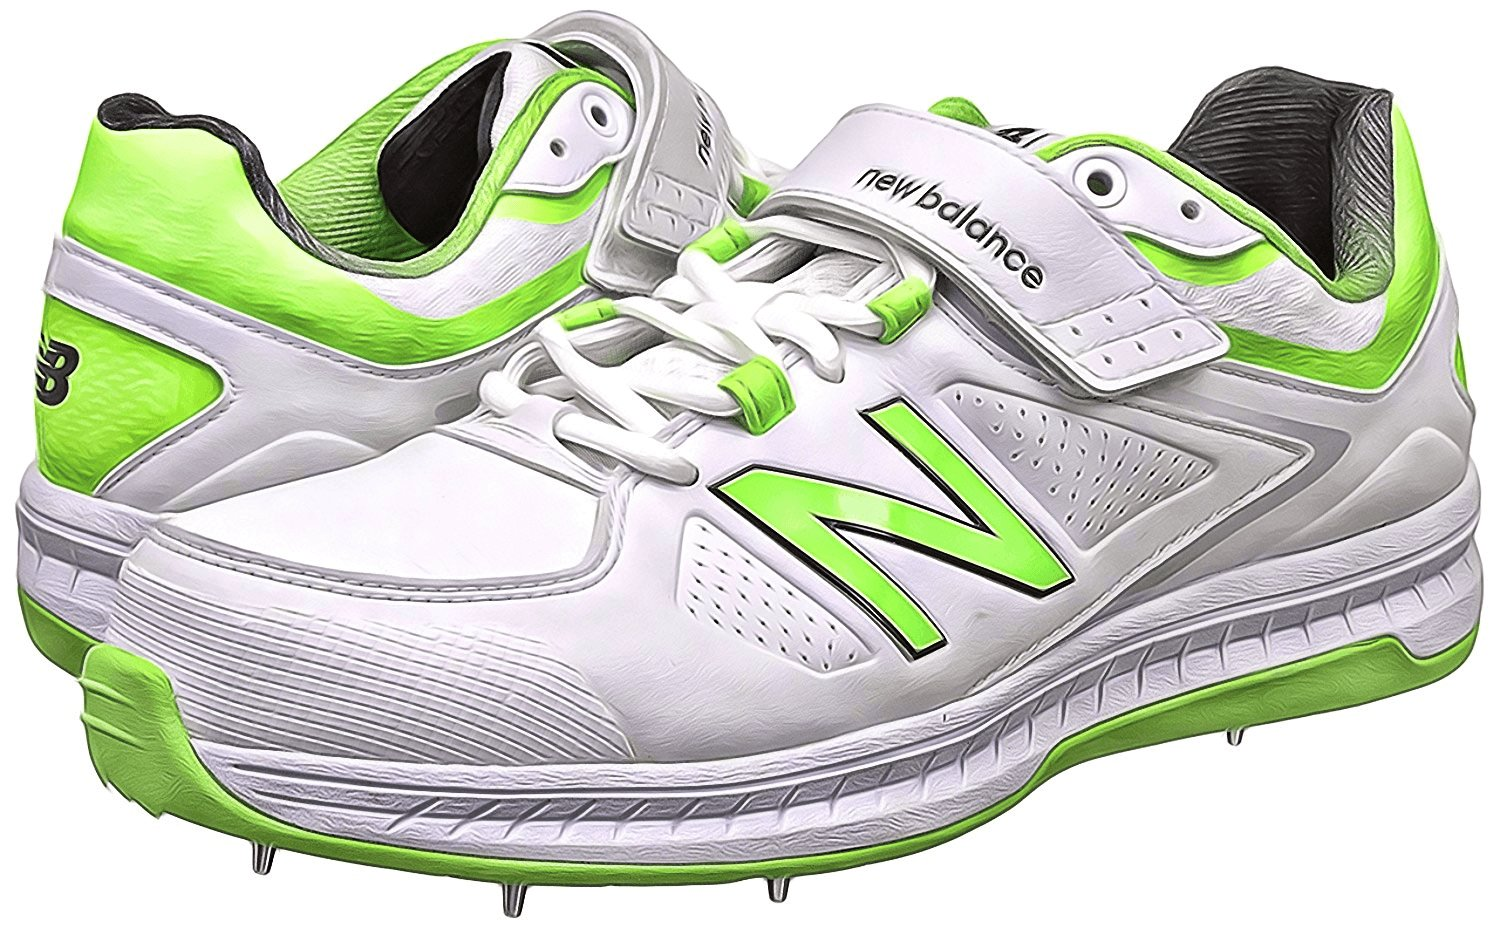 New Balance Full Spike CK4040W3 High Impact Cricket Shoes